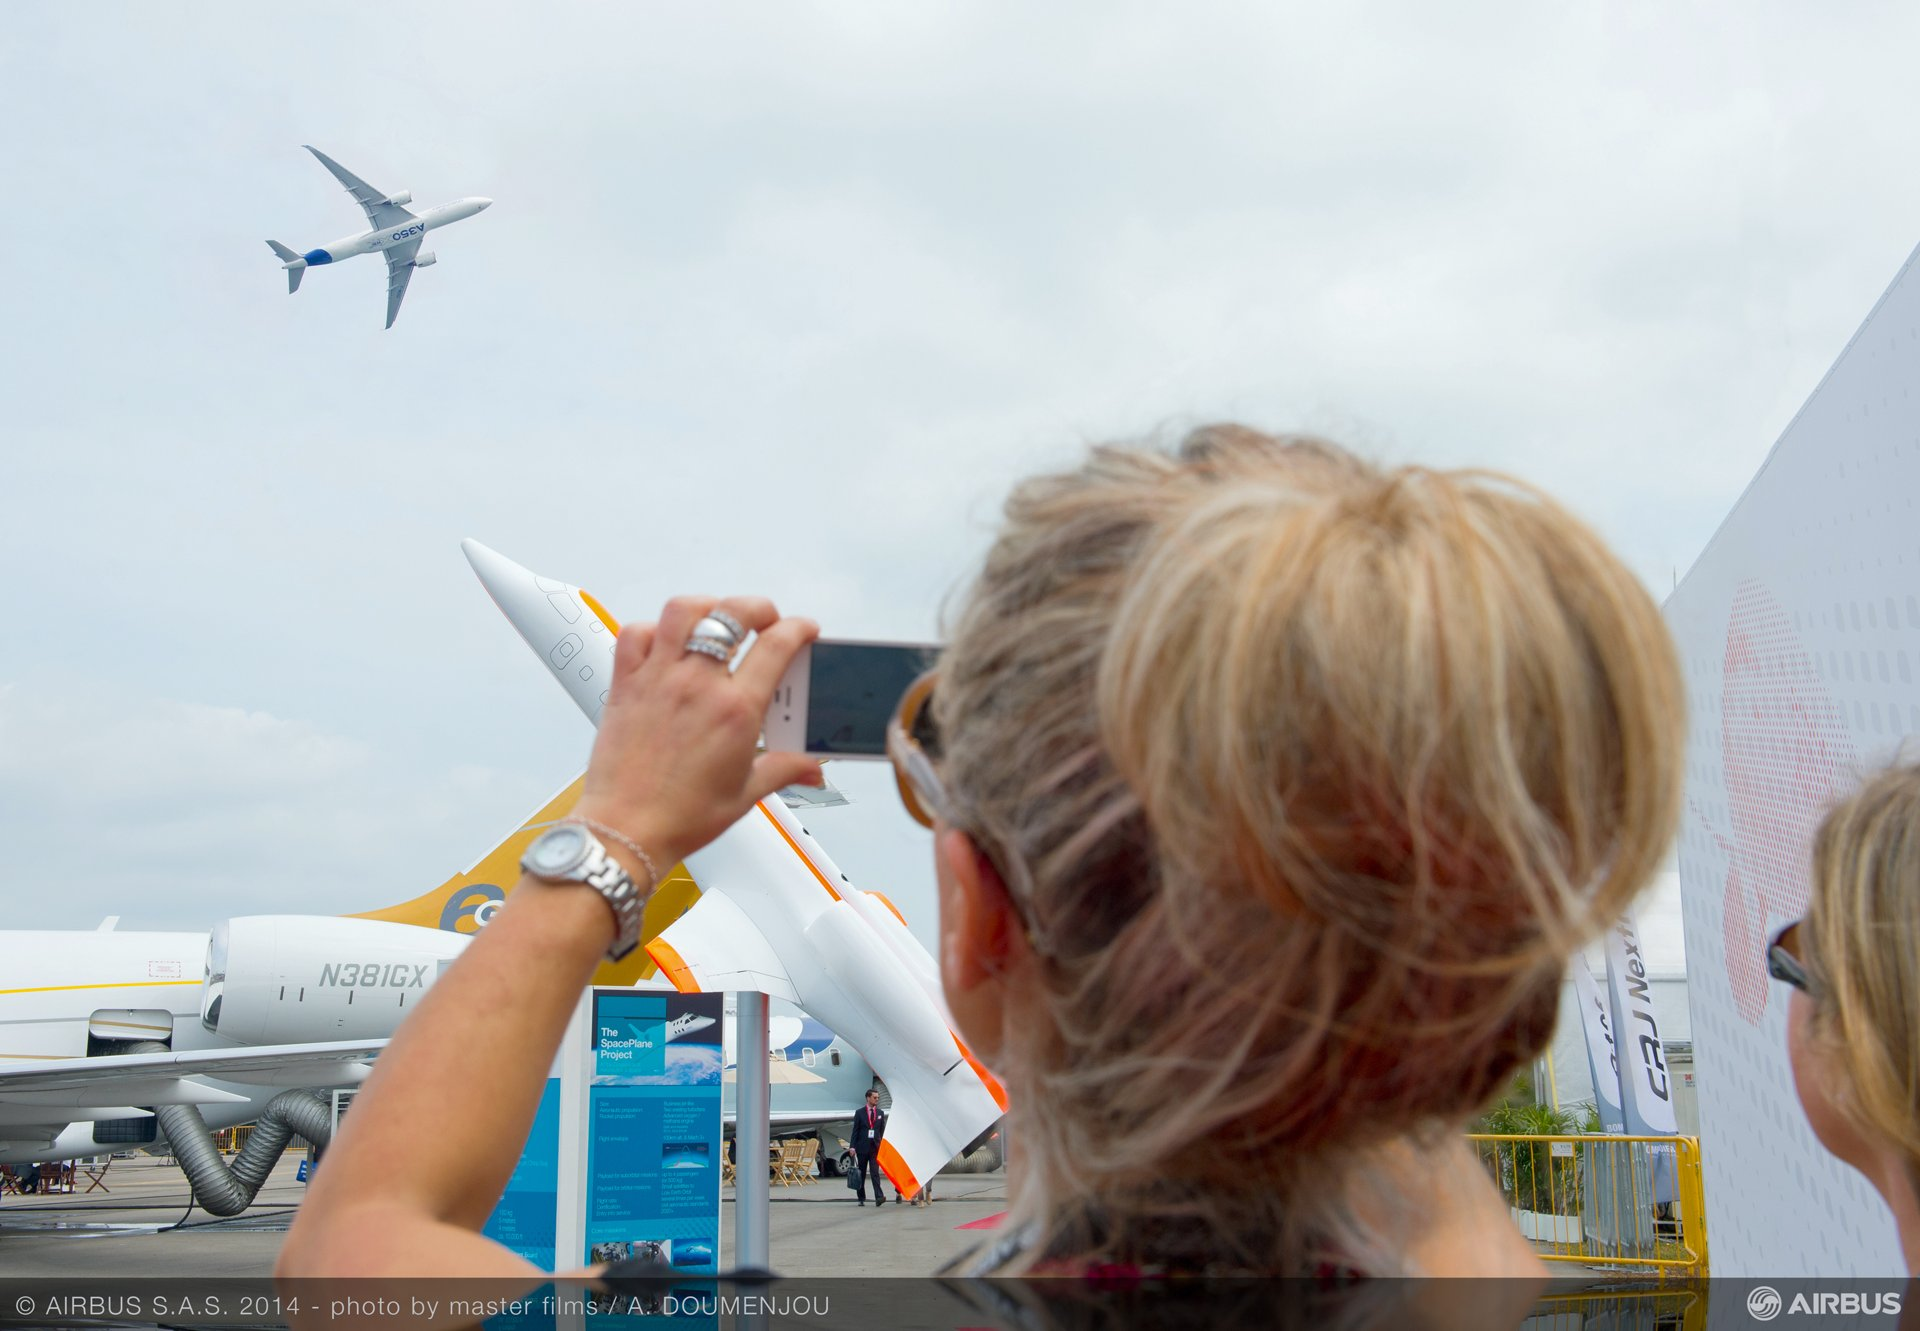 Singapore Airshow – A350 XWB in flight 5 (Day 2)